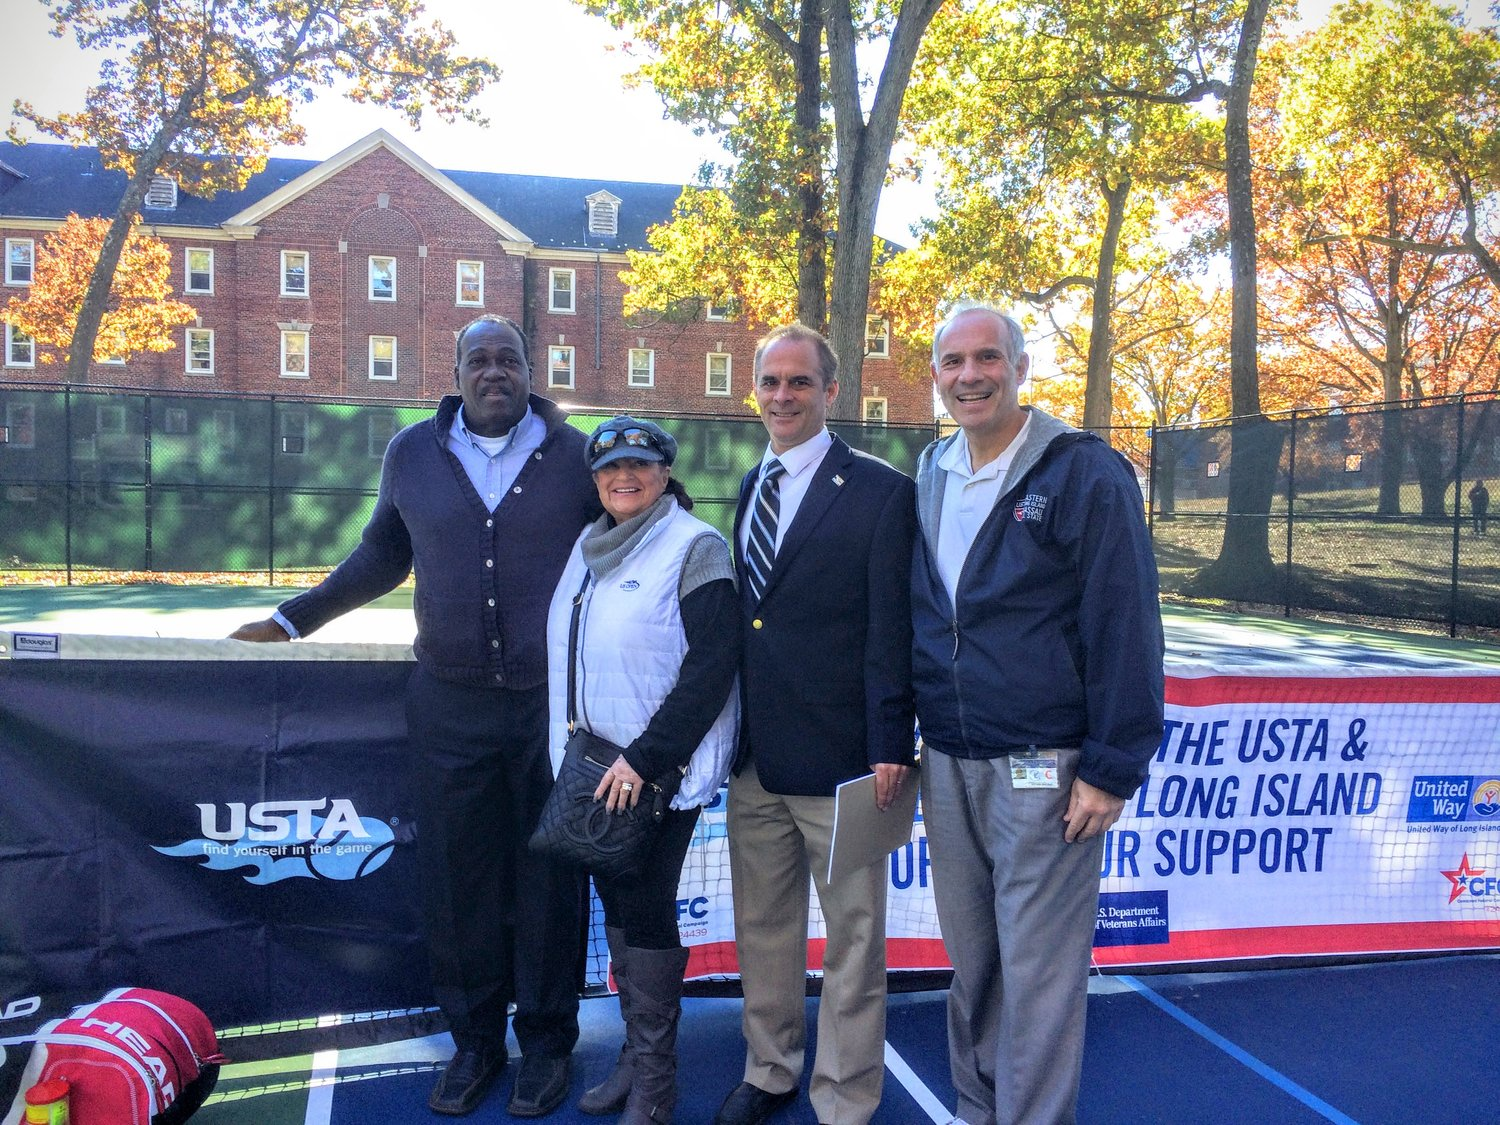 Daniel Burgess, left, was joined by fellow USTA Long Island Region board members Sunny Fishking, Craig Fligstein and Mike Pavlides when Burgess received the Fran Osei Community Service Award in 2018.